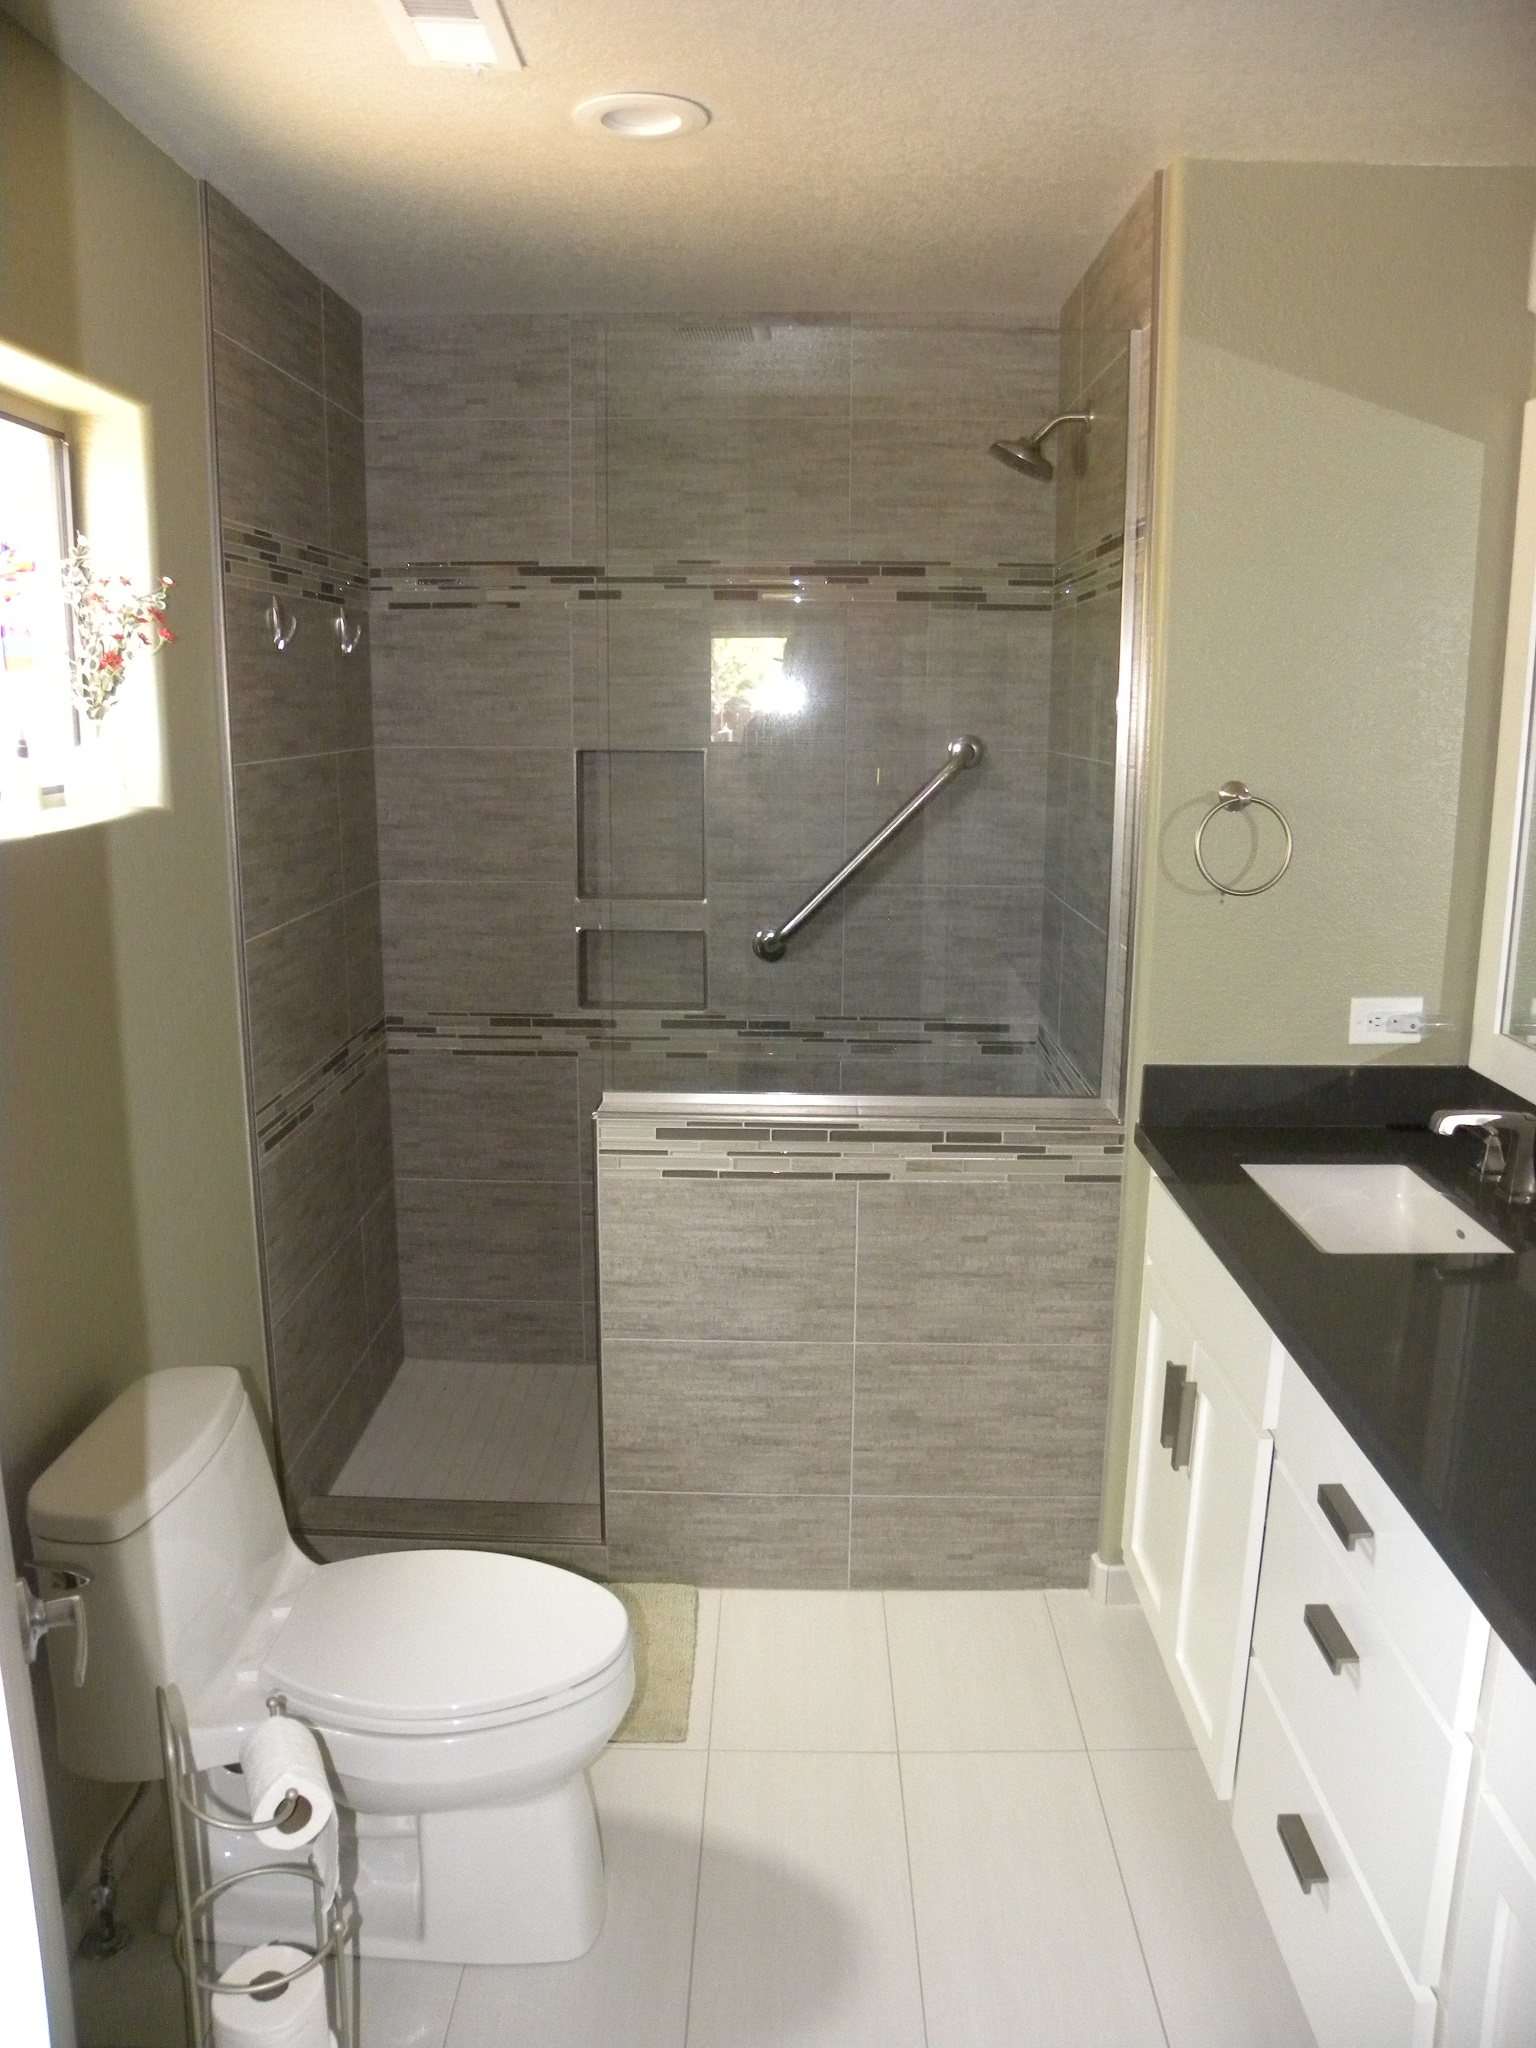 After photo of a custom residential bathroom with black countertops and white wooden cabinets, new white tiles, and a custom designed shower with gray tile, glass windows and doors, and specially design handles.